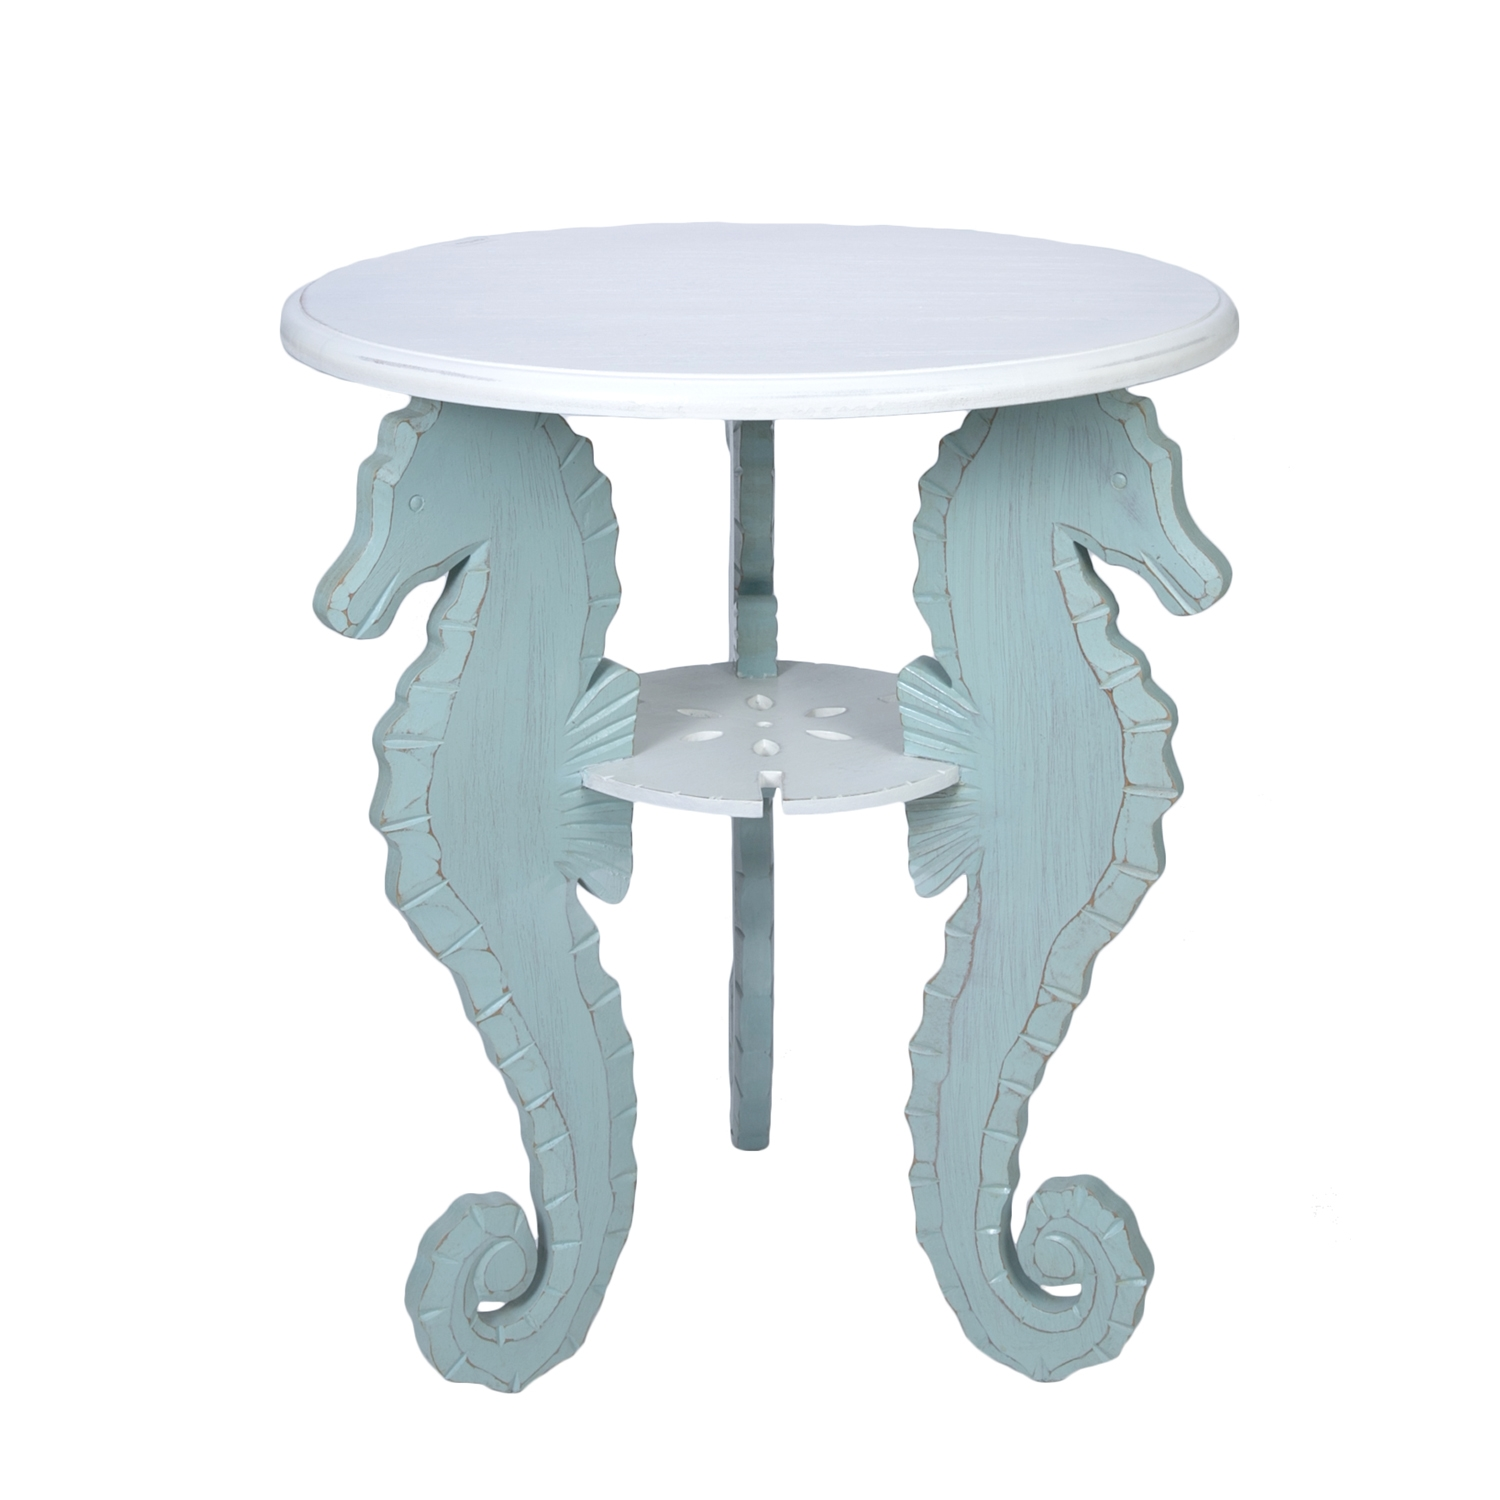 rustic leather furniture the outrageous beautiful teal round end beachcombers coastal life table small seahorse industrial pipe console leons sofas threshold mirrored accent fire